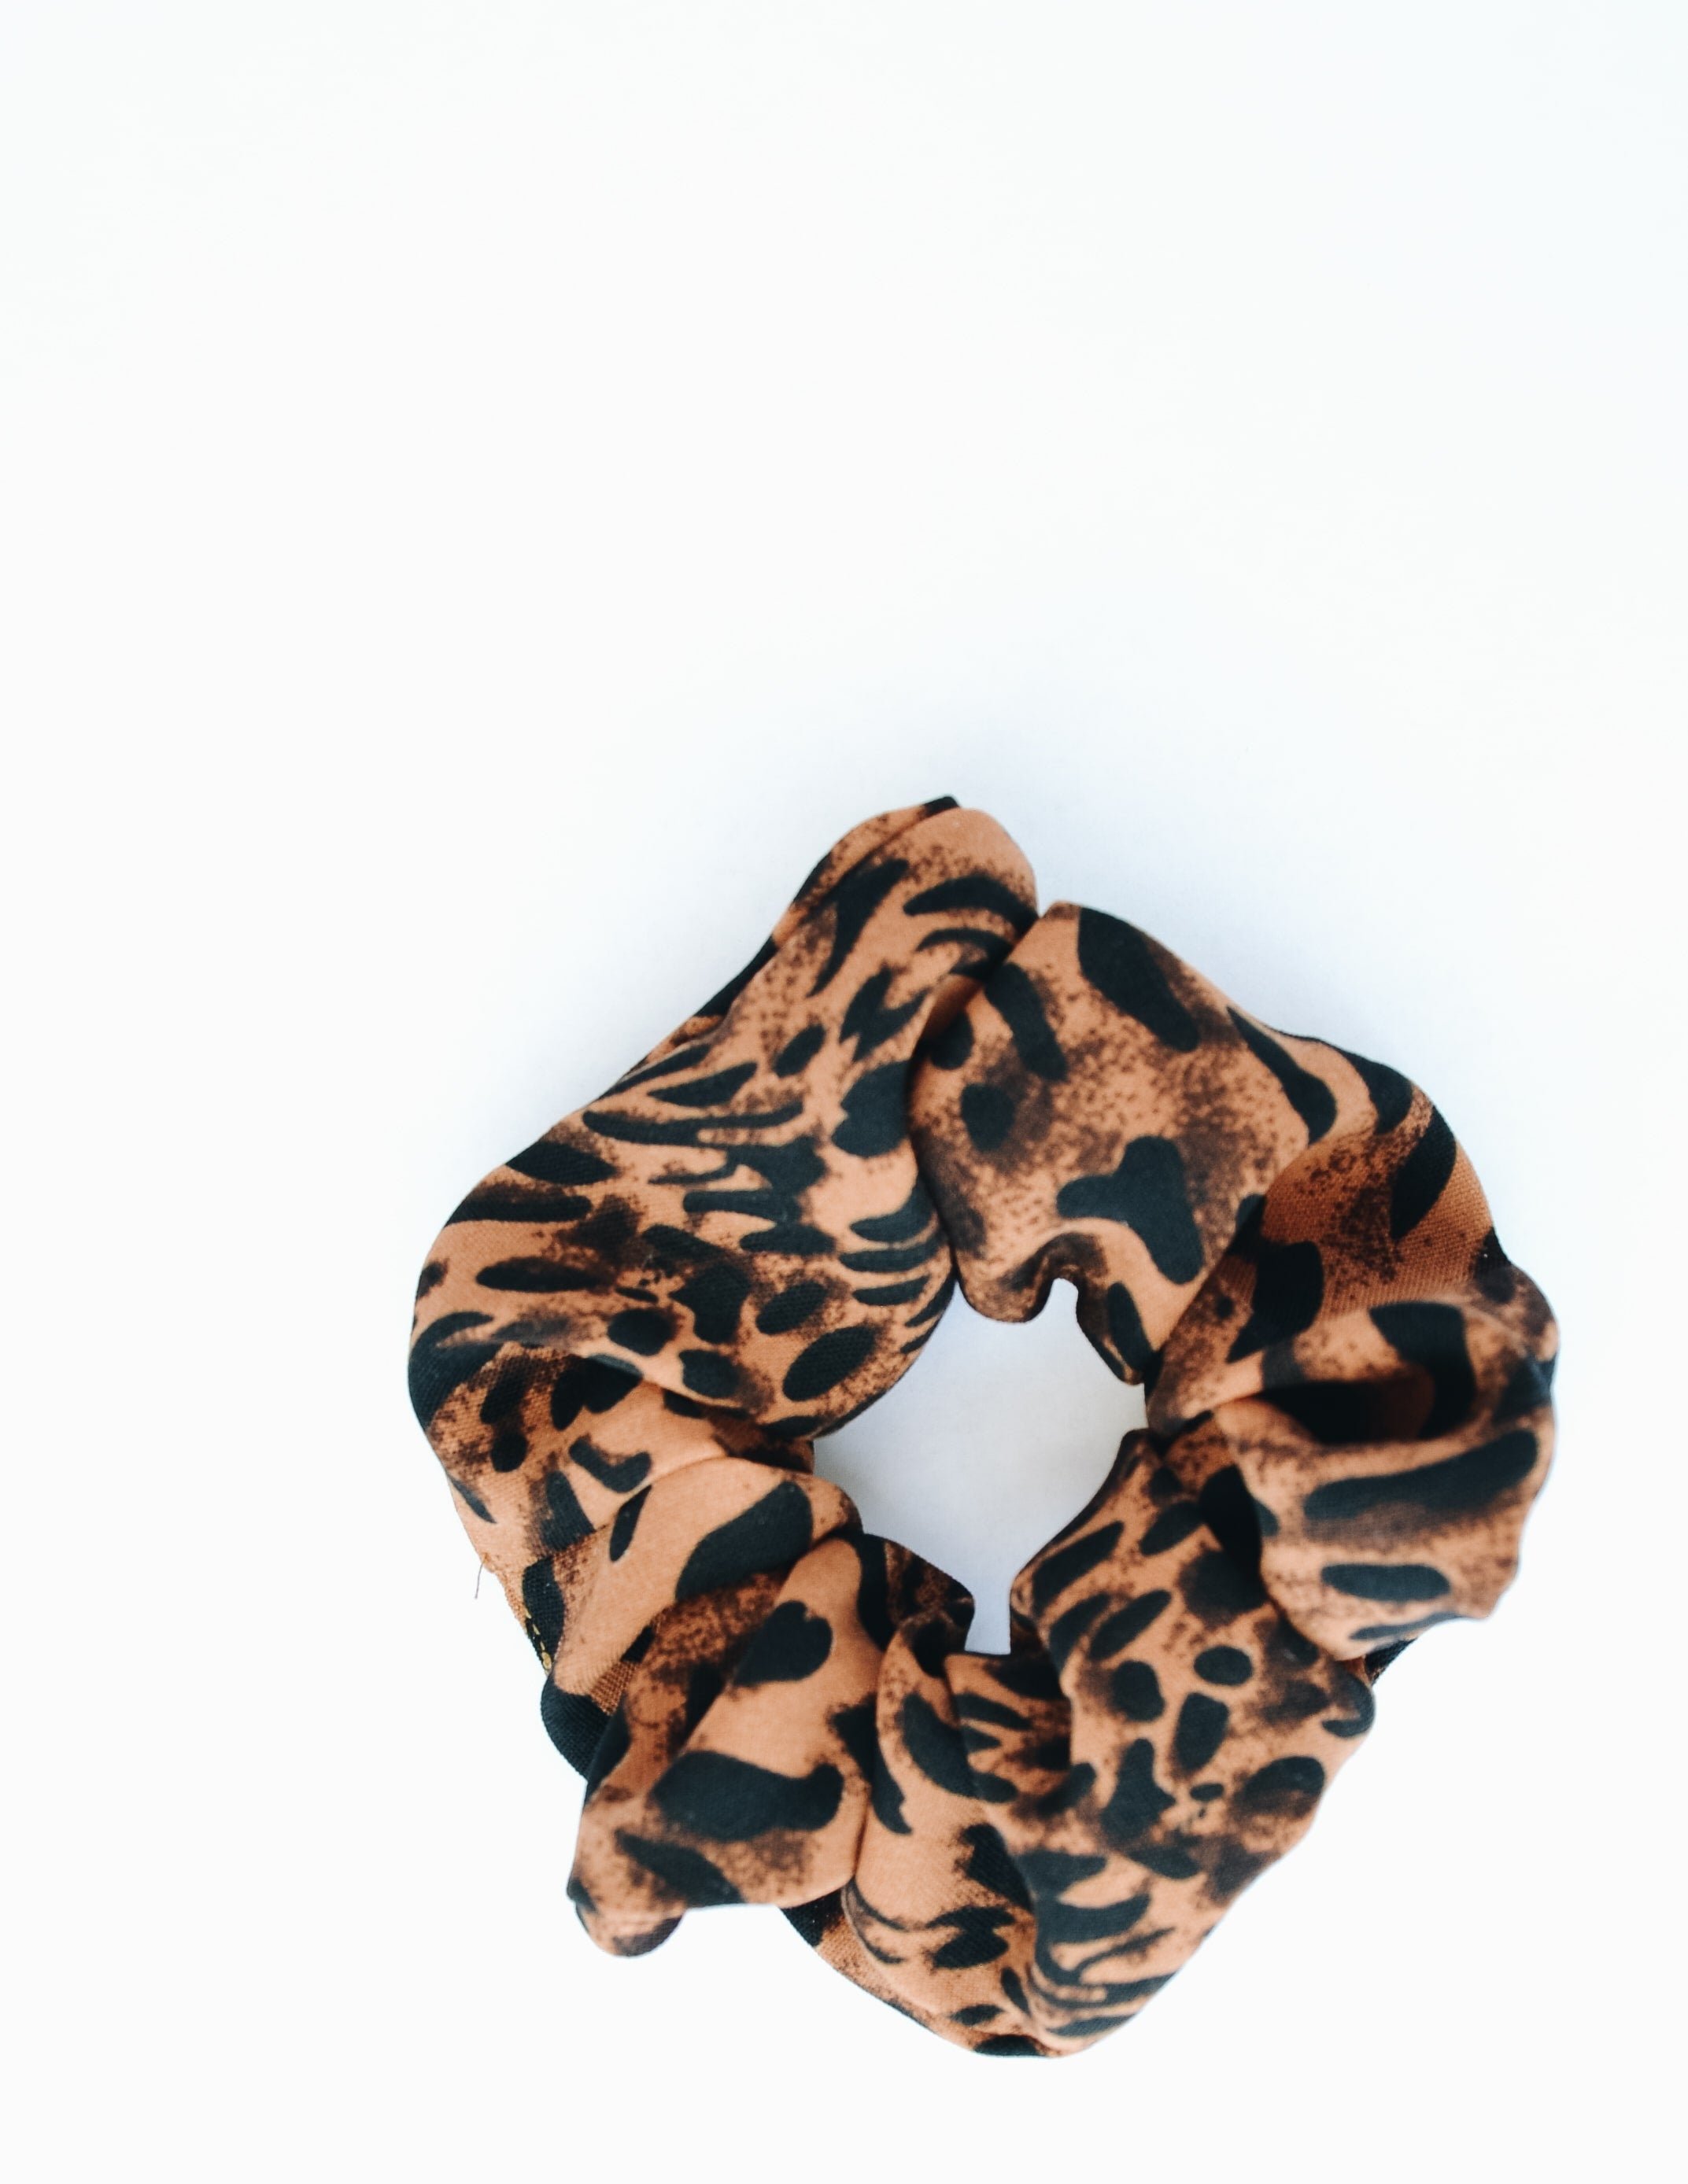 Dark colored cheetah print on white background - elle bleu